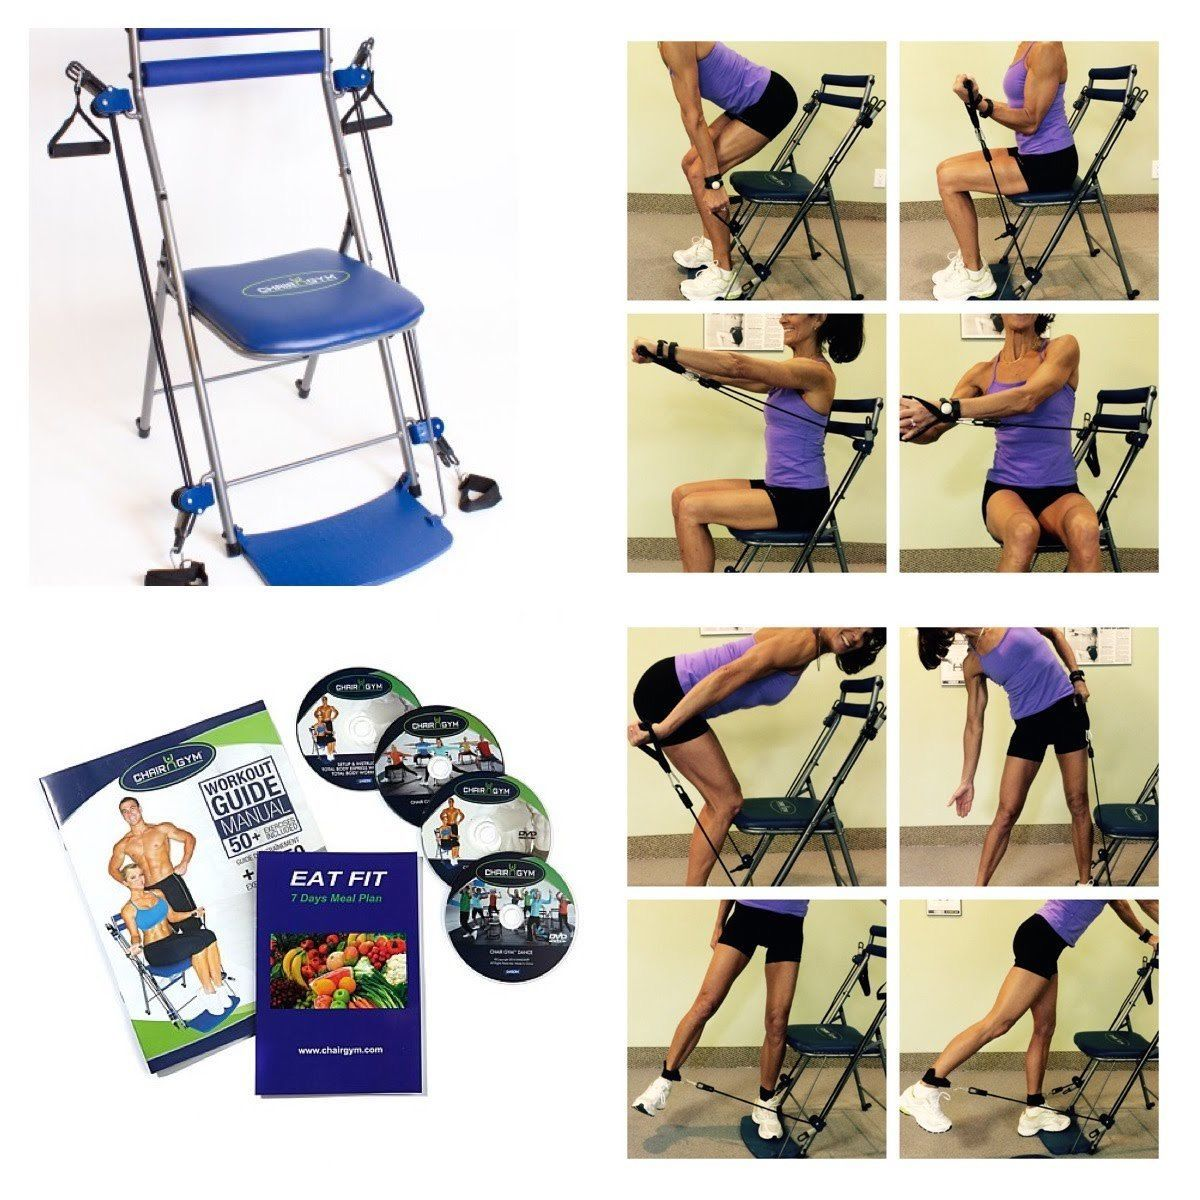 Multi Use Home Gym Exercise Chair Low Impact Total Body Resistance Workout New Ebay In 2020 Gym Workouts Chair Exercises Home Gym Exercises